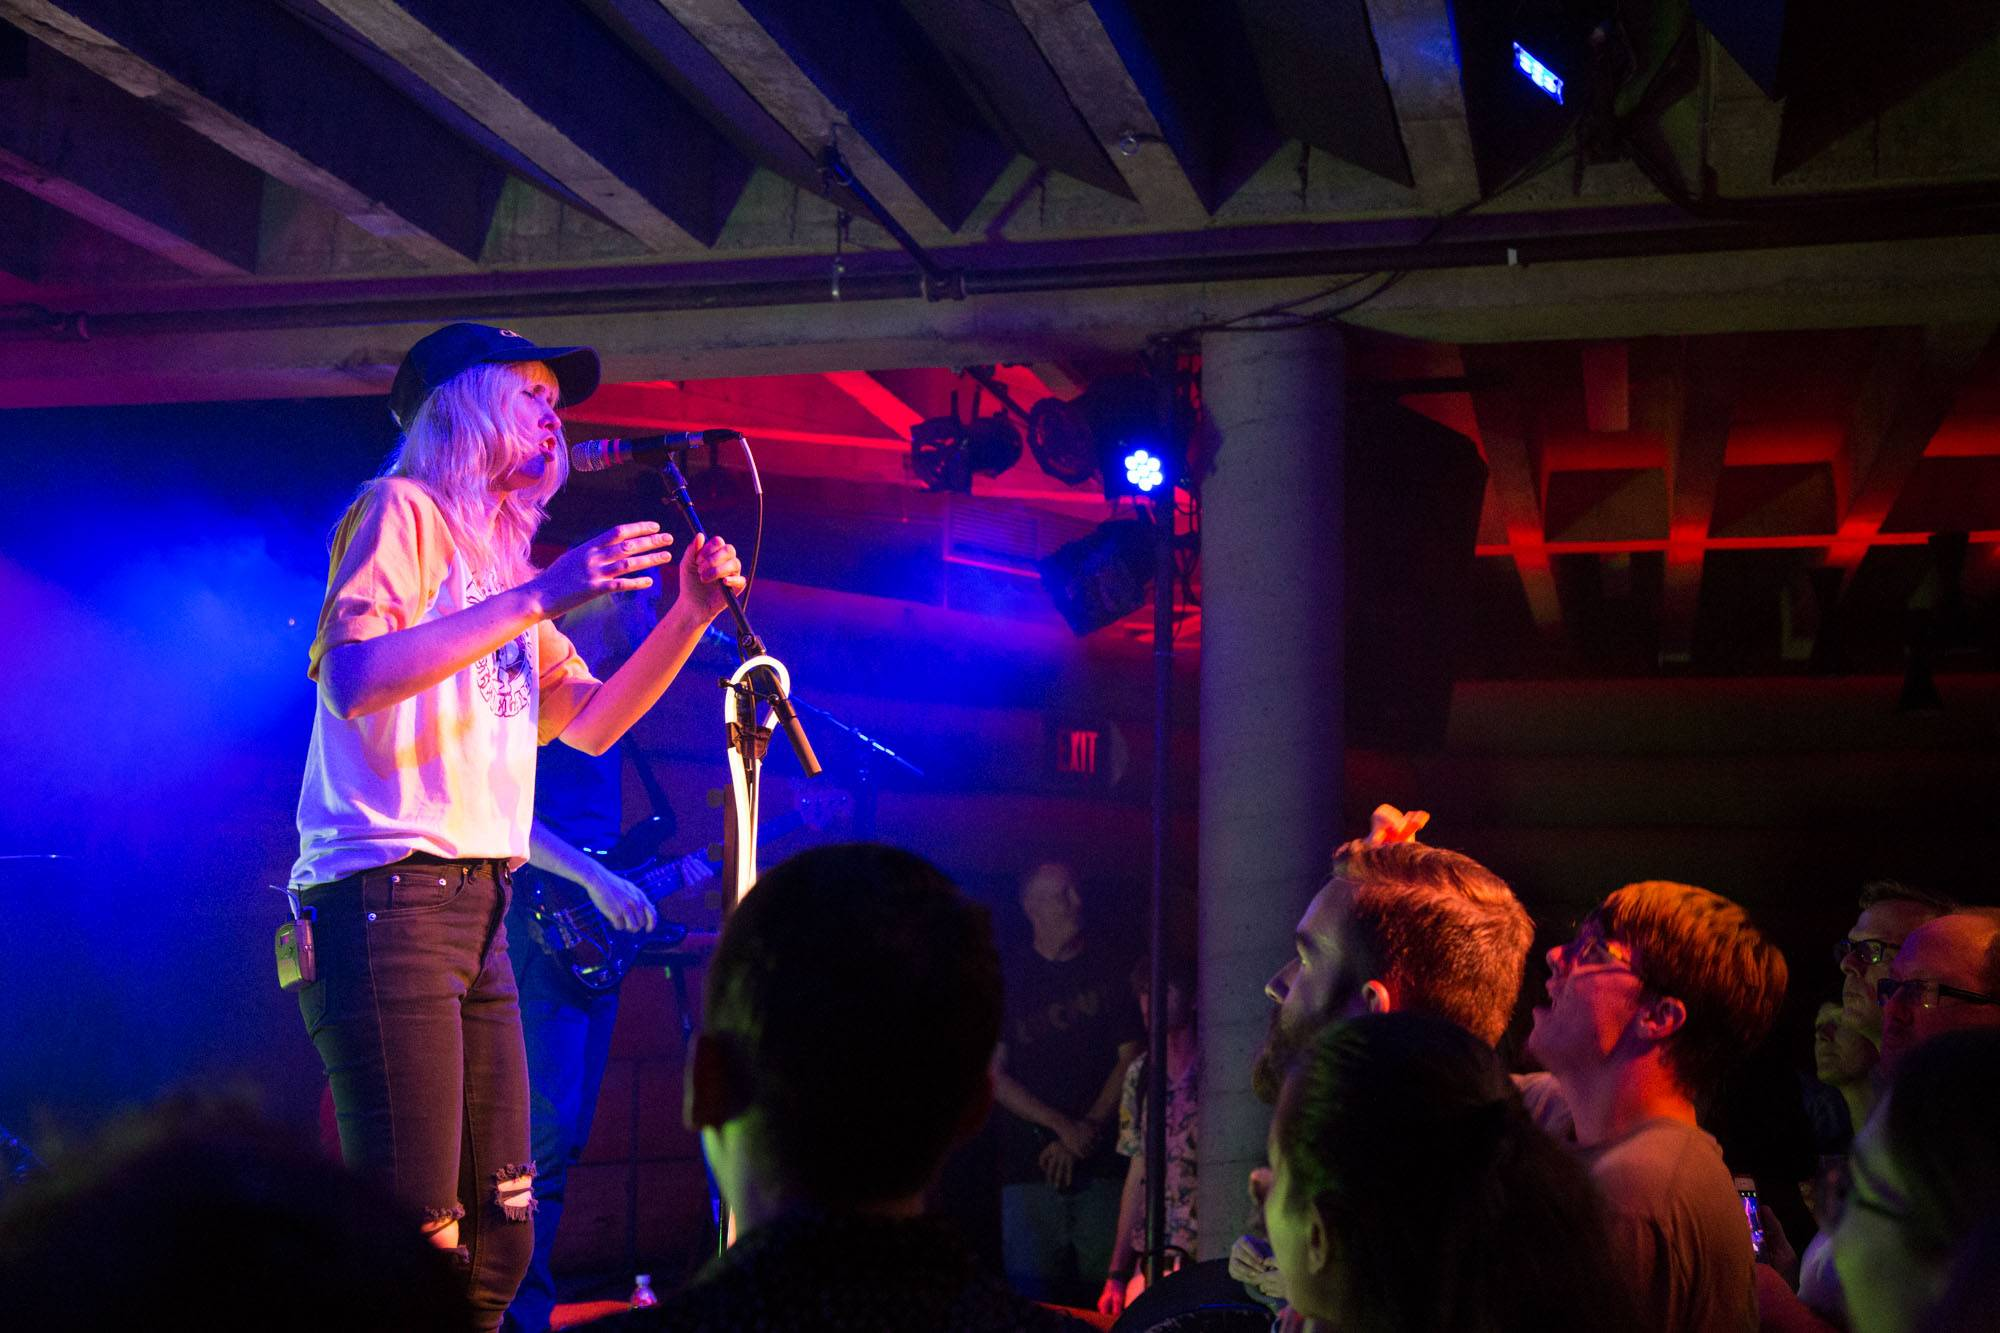 Ladyhawke at the Doug Fir Lounge, Portland, Jul 1 2016. Kirk Chantraine photo.